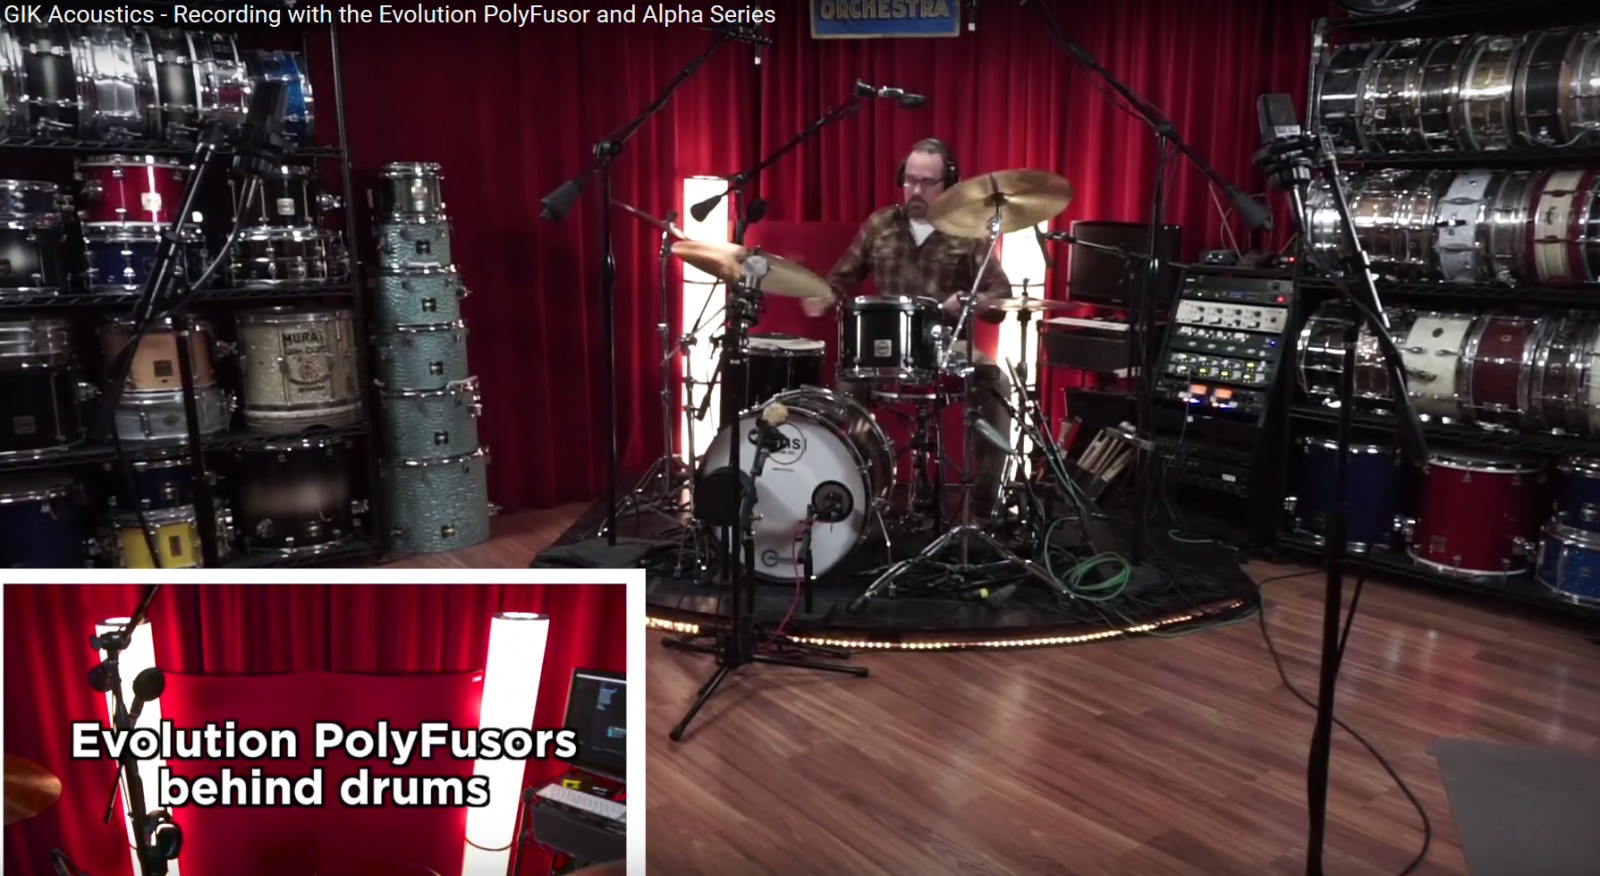 GIK Acoustics Drum Sessions recording with PolyFusor combination absorber diffusor panels